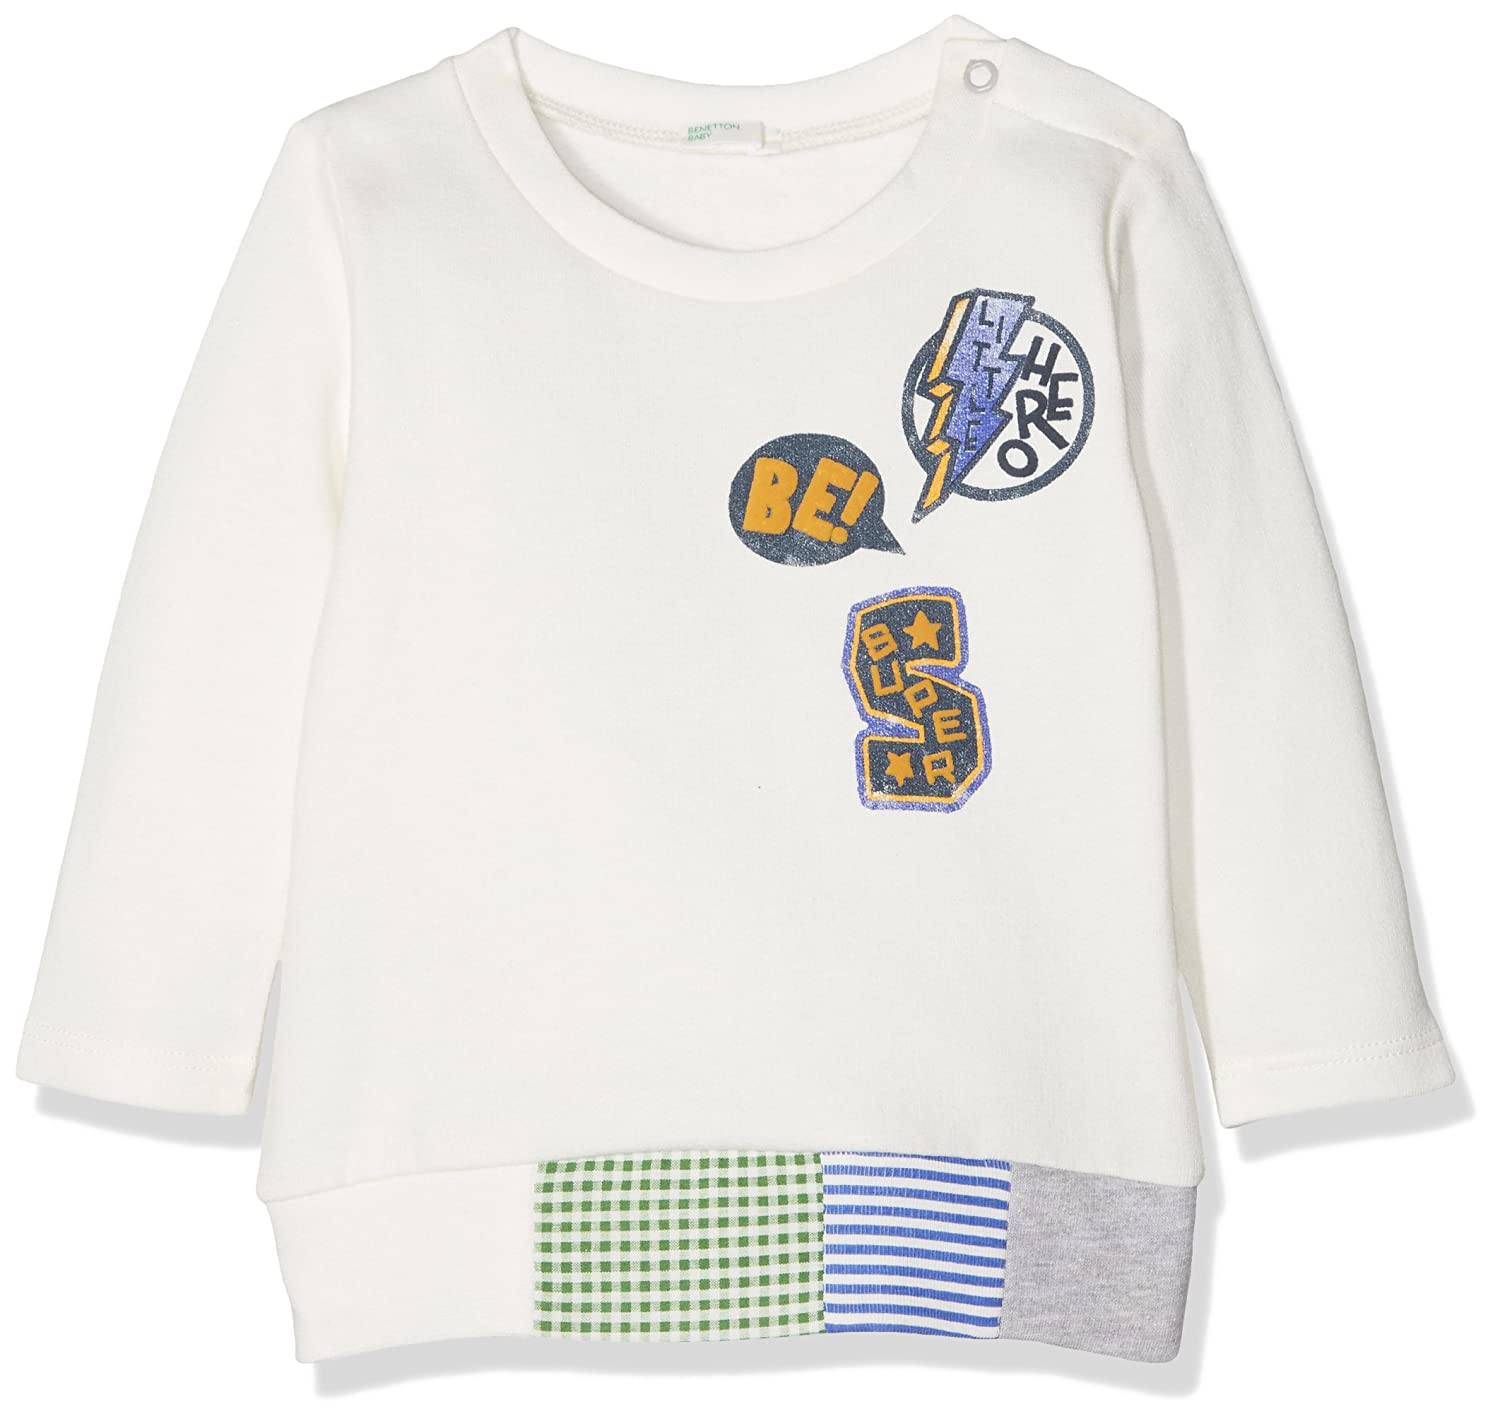 United Colors of Benetton Cotton Blend Longsleeve Sweater, Sudadera Bebé-para Niñas: Amazon.es: Ropa y accesorios